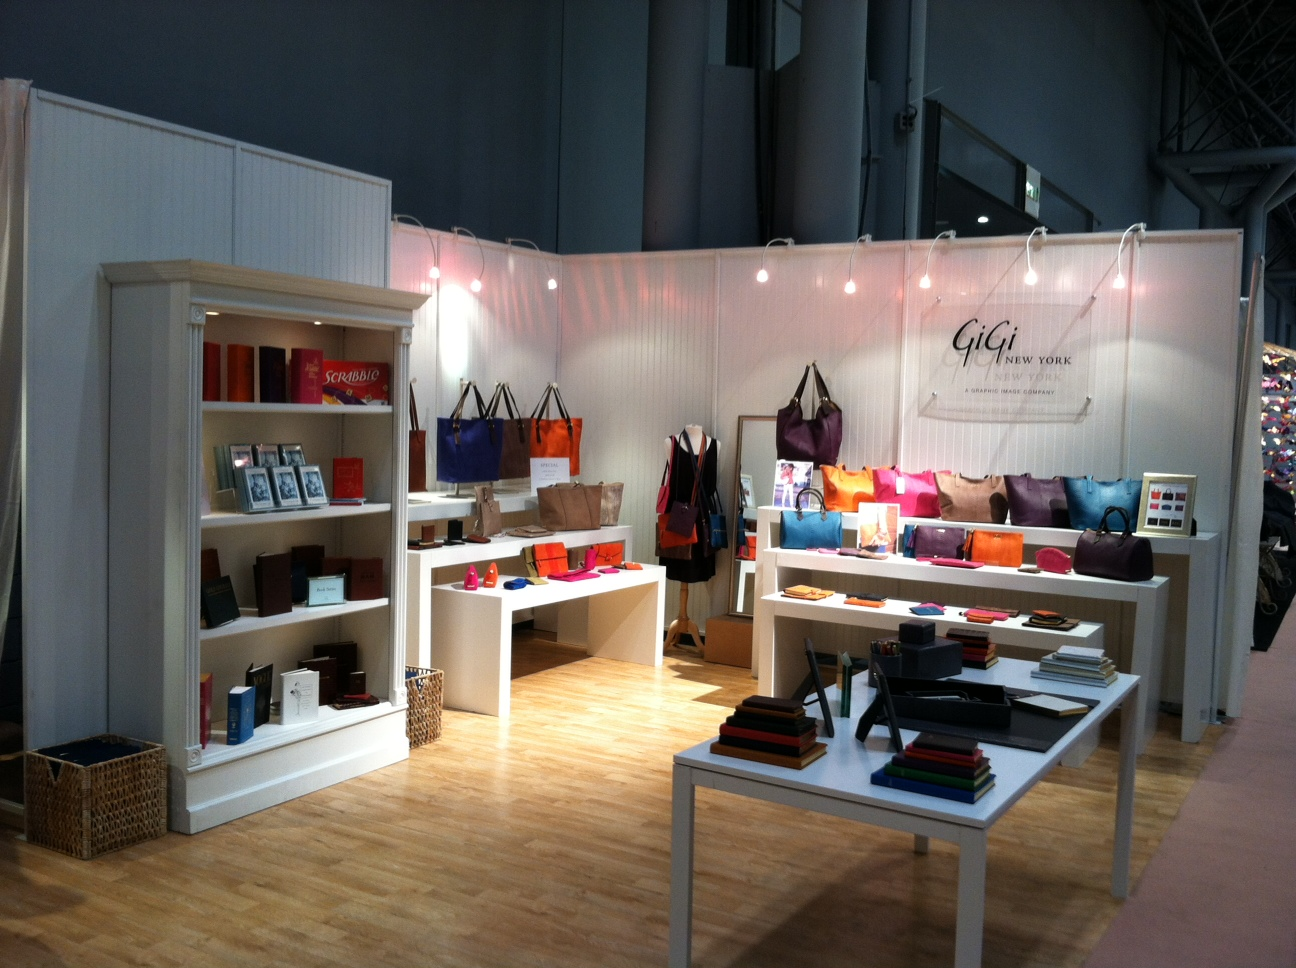 New York International Gift Show at the Jacob K. Javits Convention ...